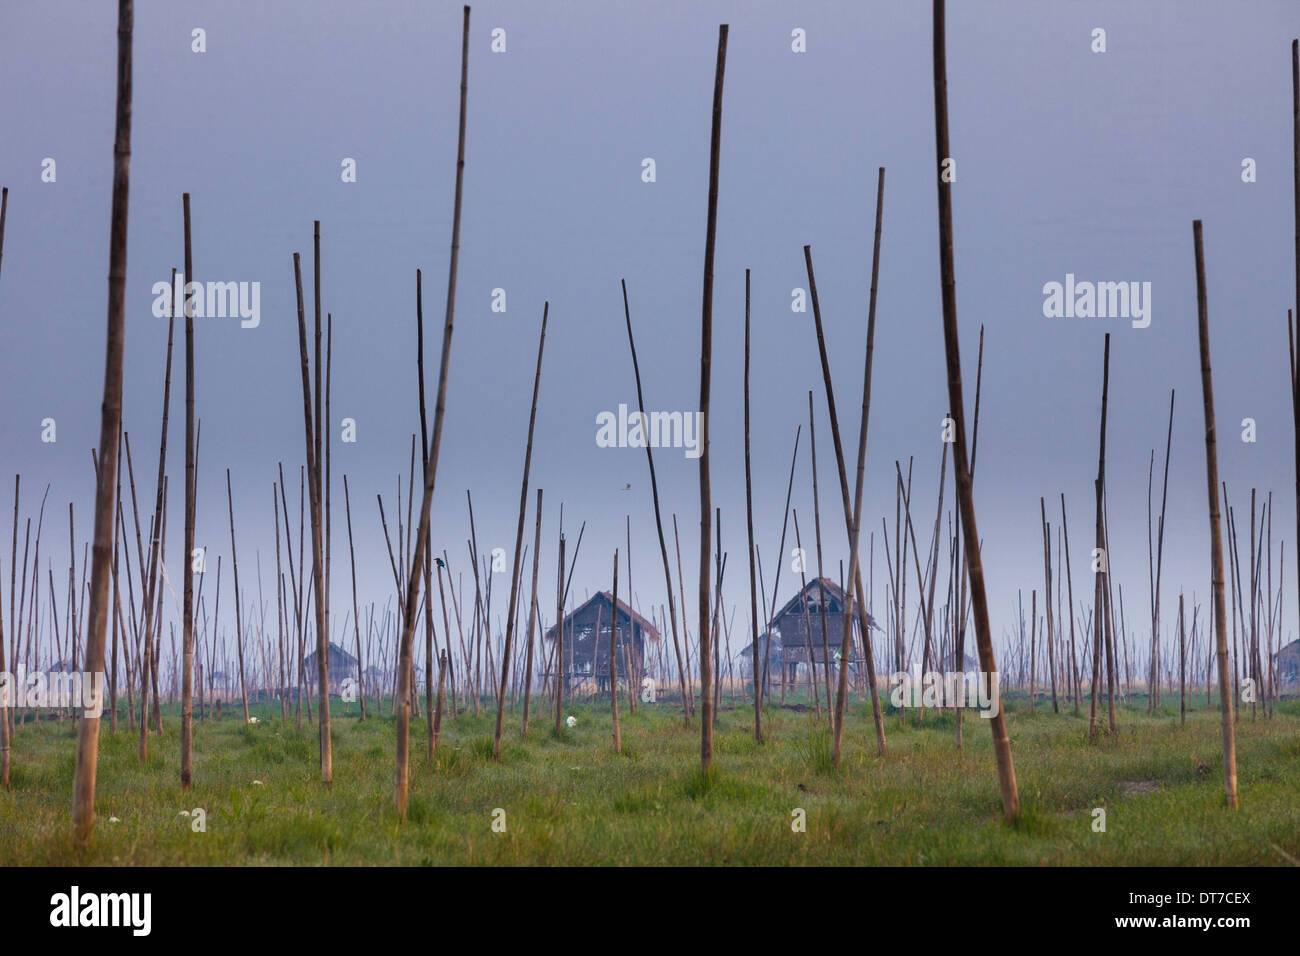 The marshes of Inle Lake Myanmar Small houses on stilts and tall poles upright in the marsh landscape Inle Lake - Stock Image